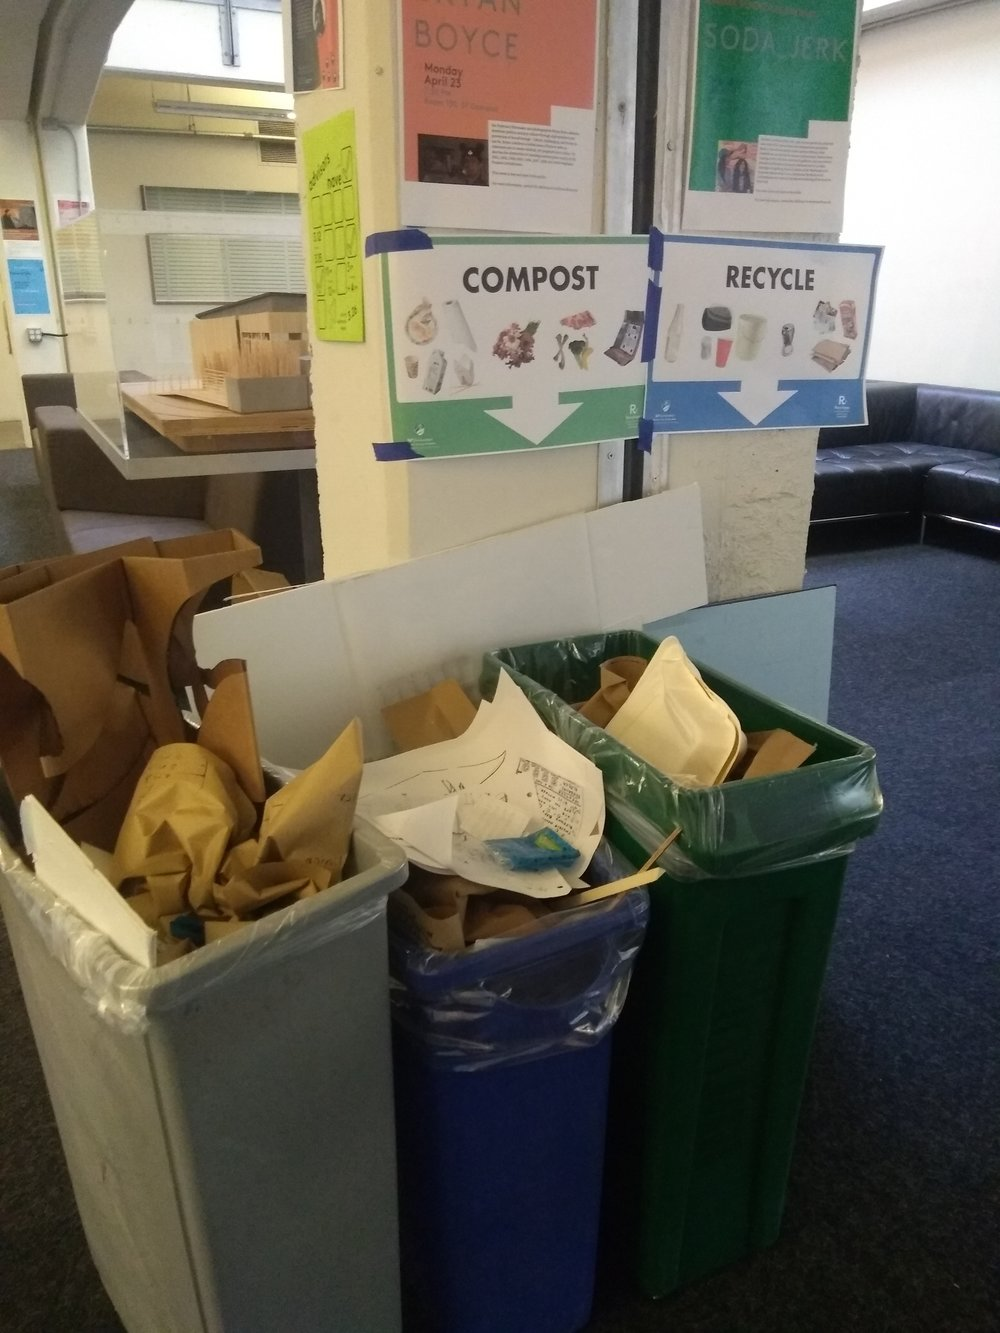 Pinning up waste segregation posters above waste bins to observe changes in correct segregation